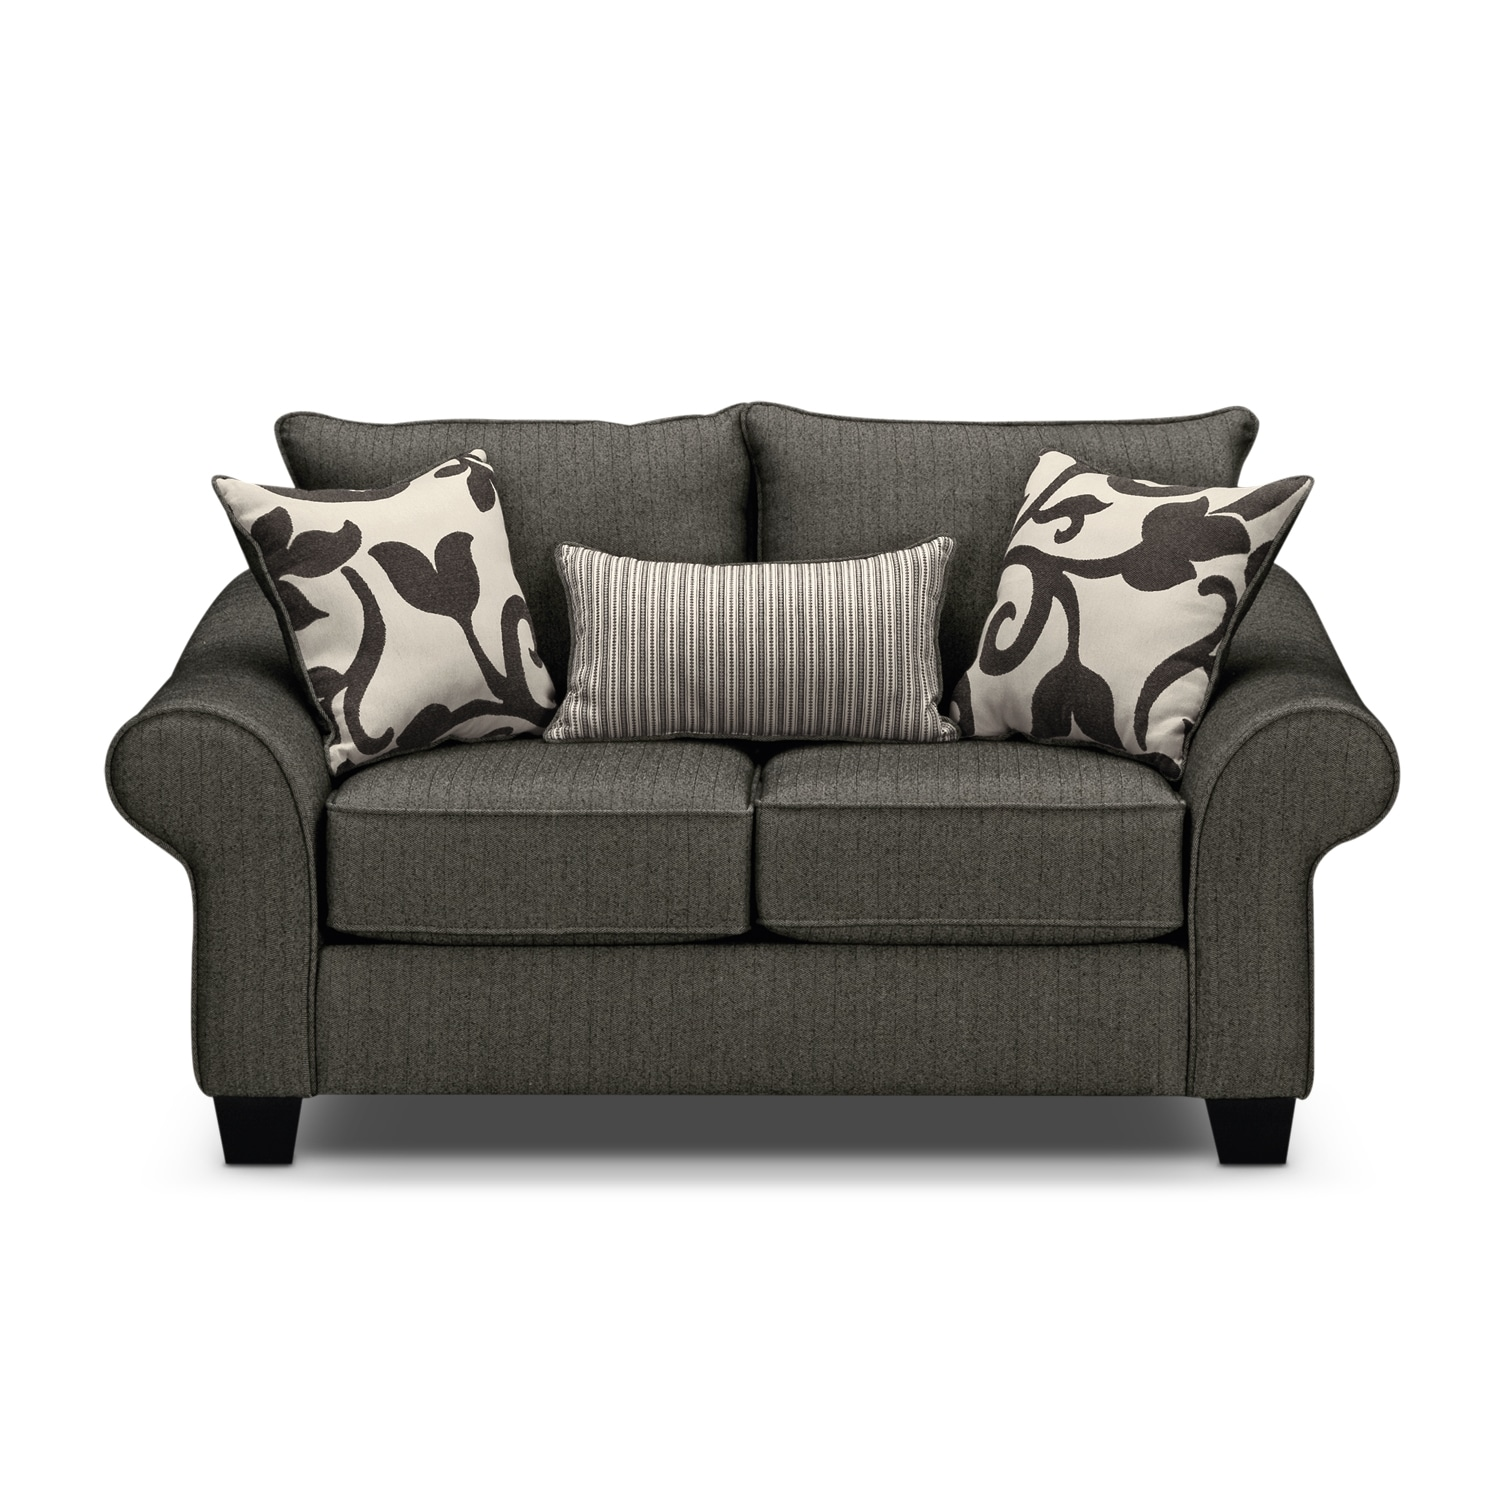 Colette loveseat gray american signature furniture for American signature couch